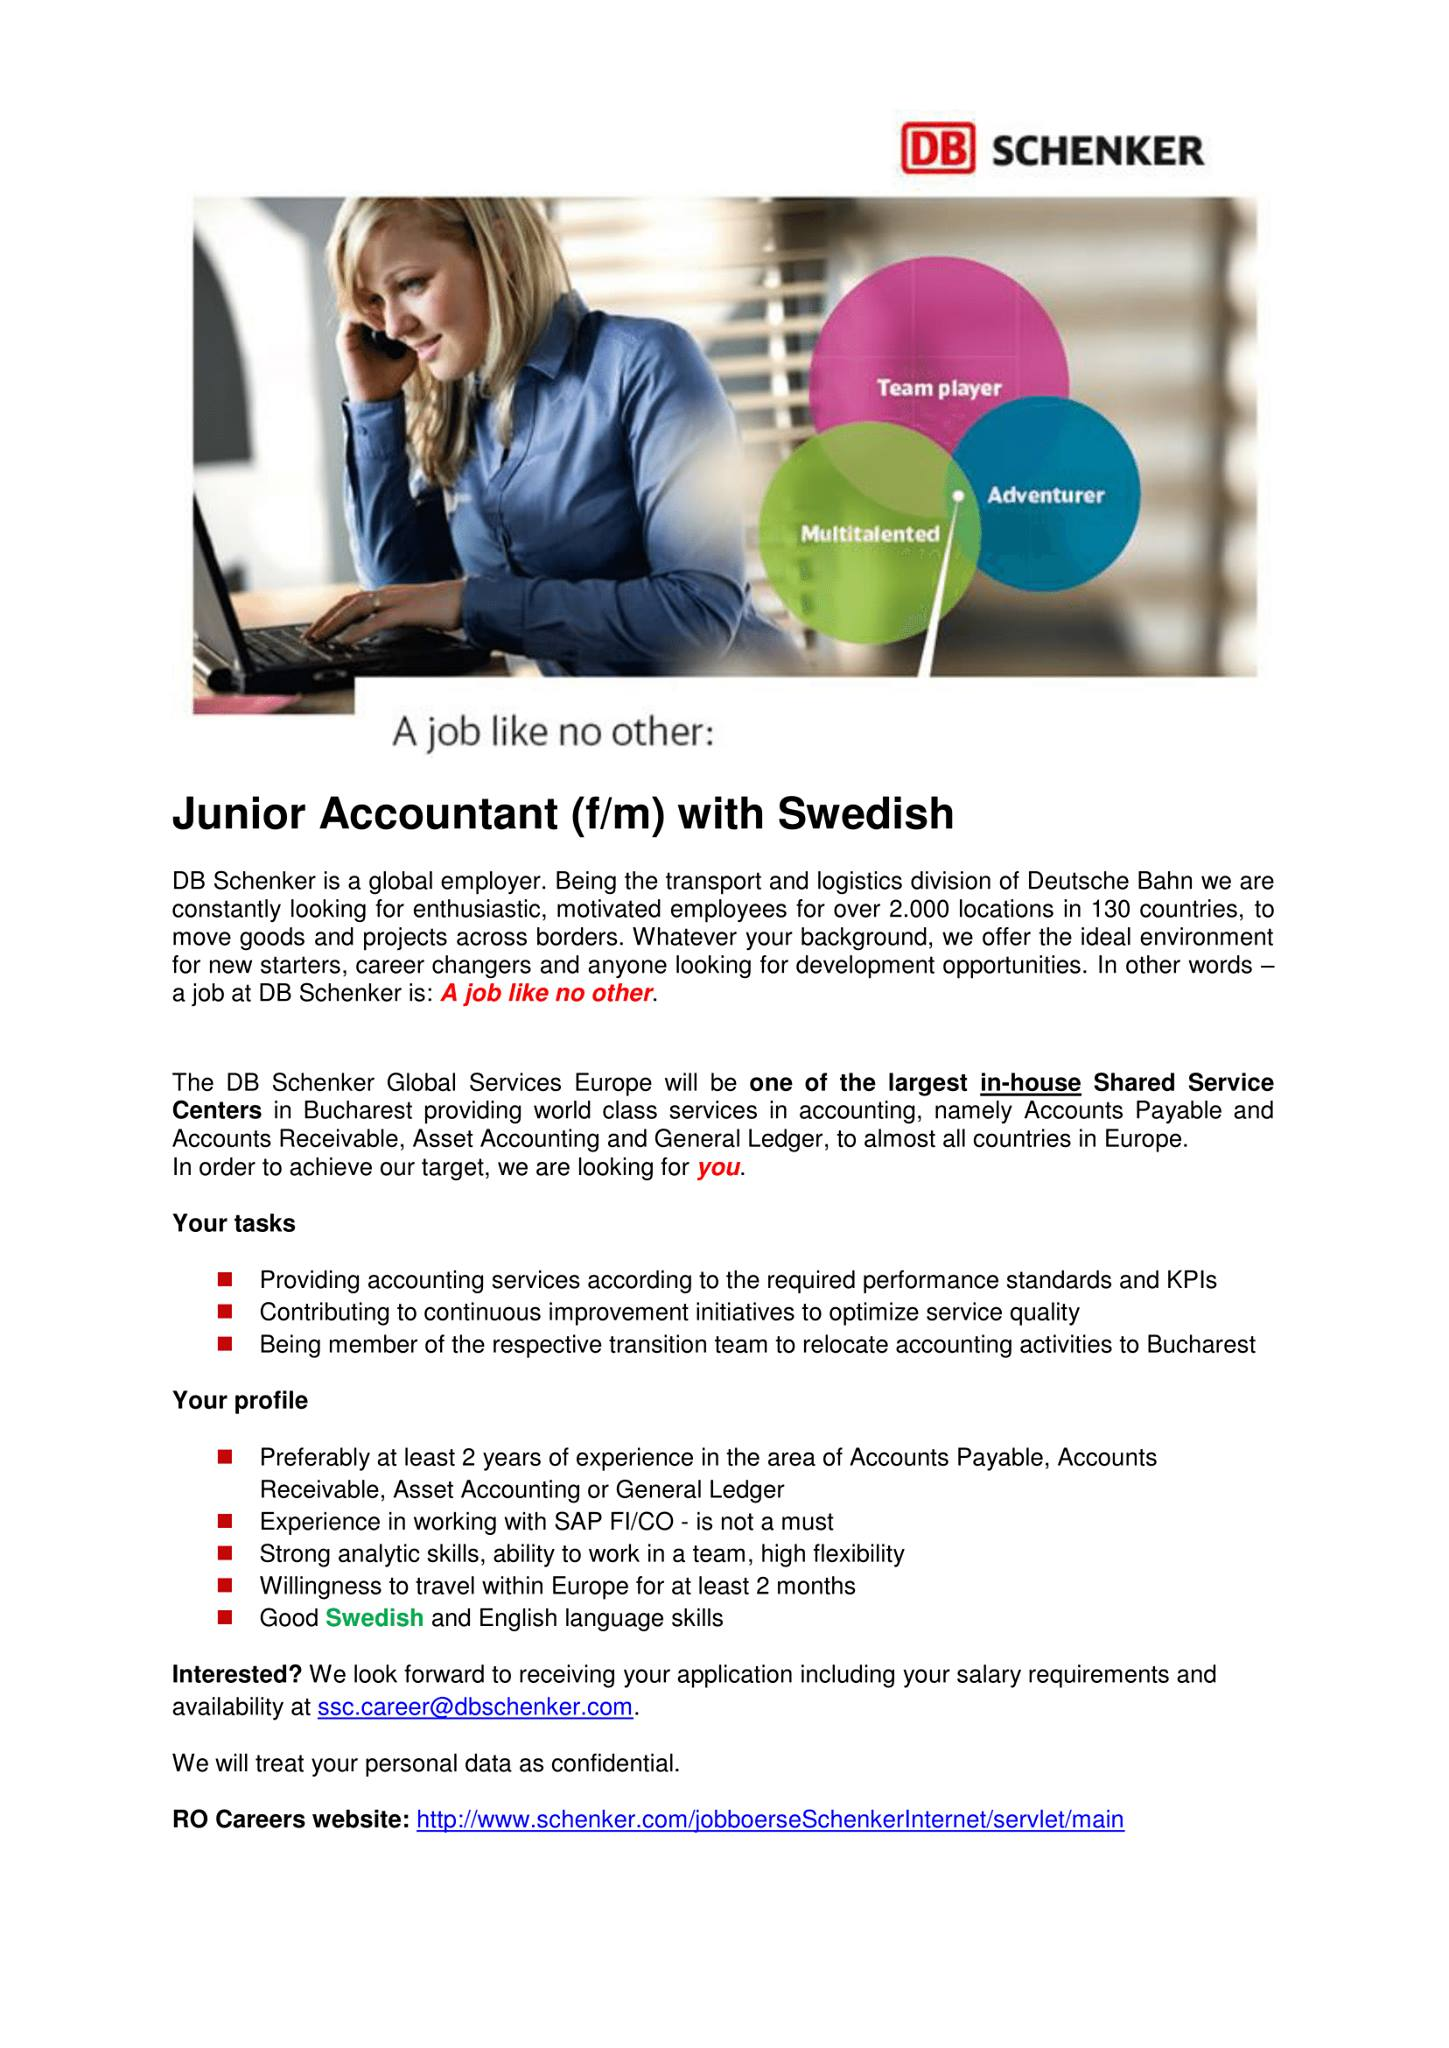 A job like no other: Junior Accountant with Swedish